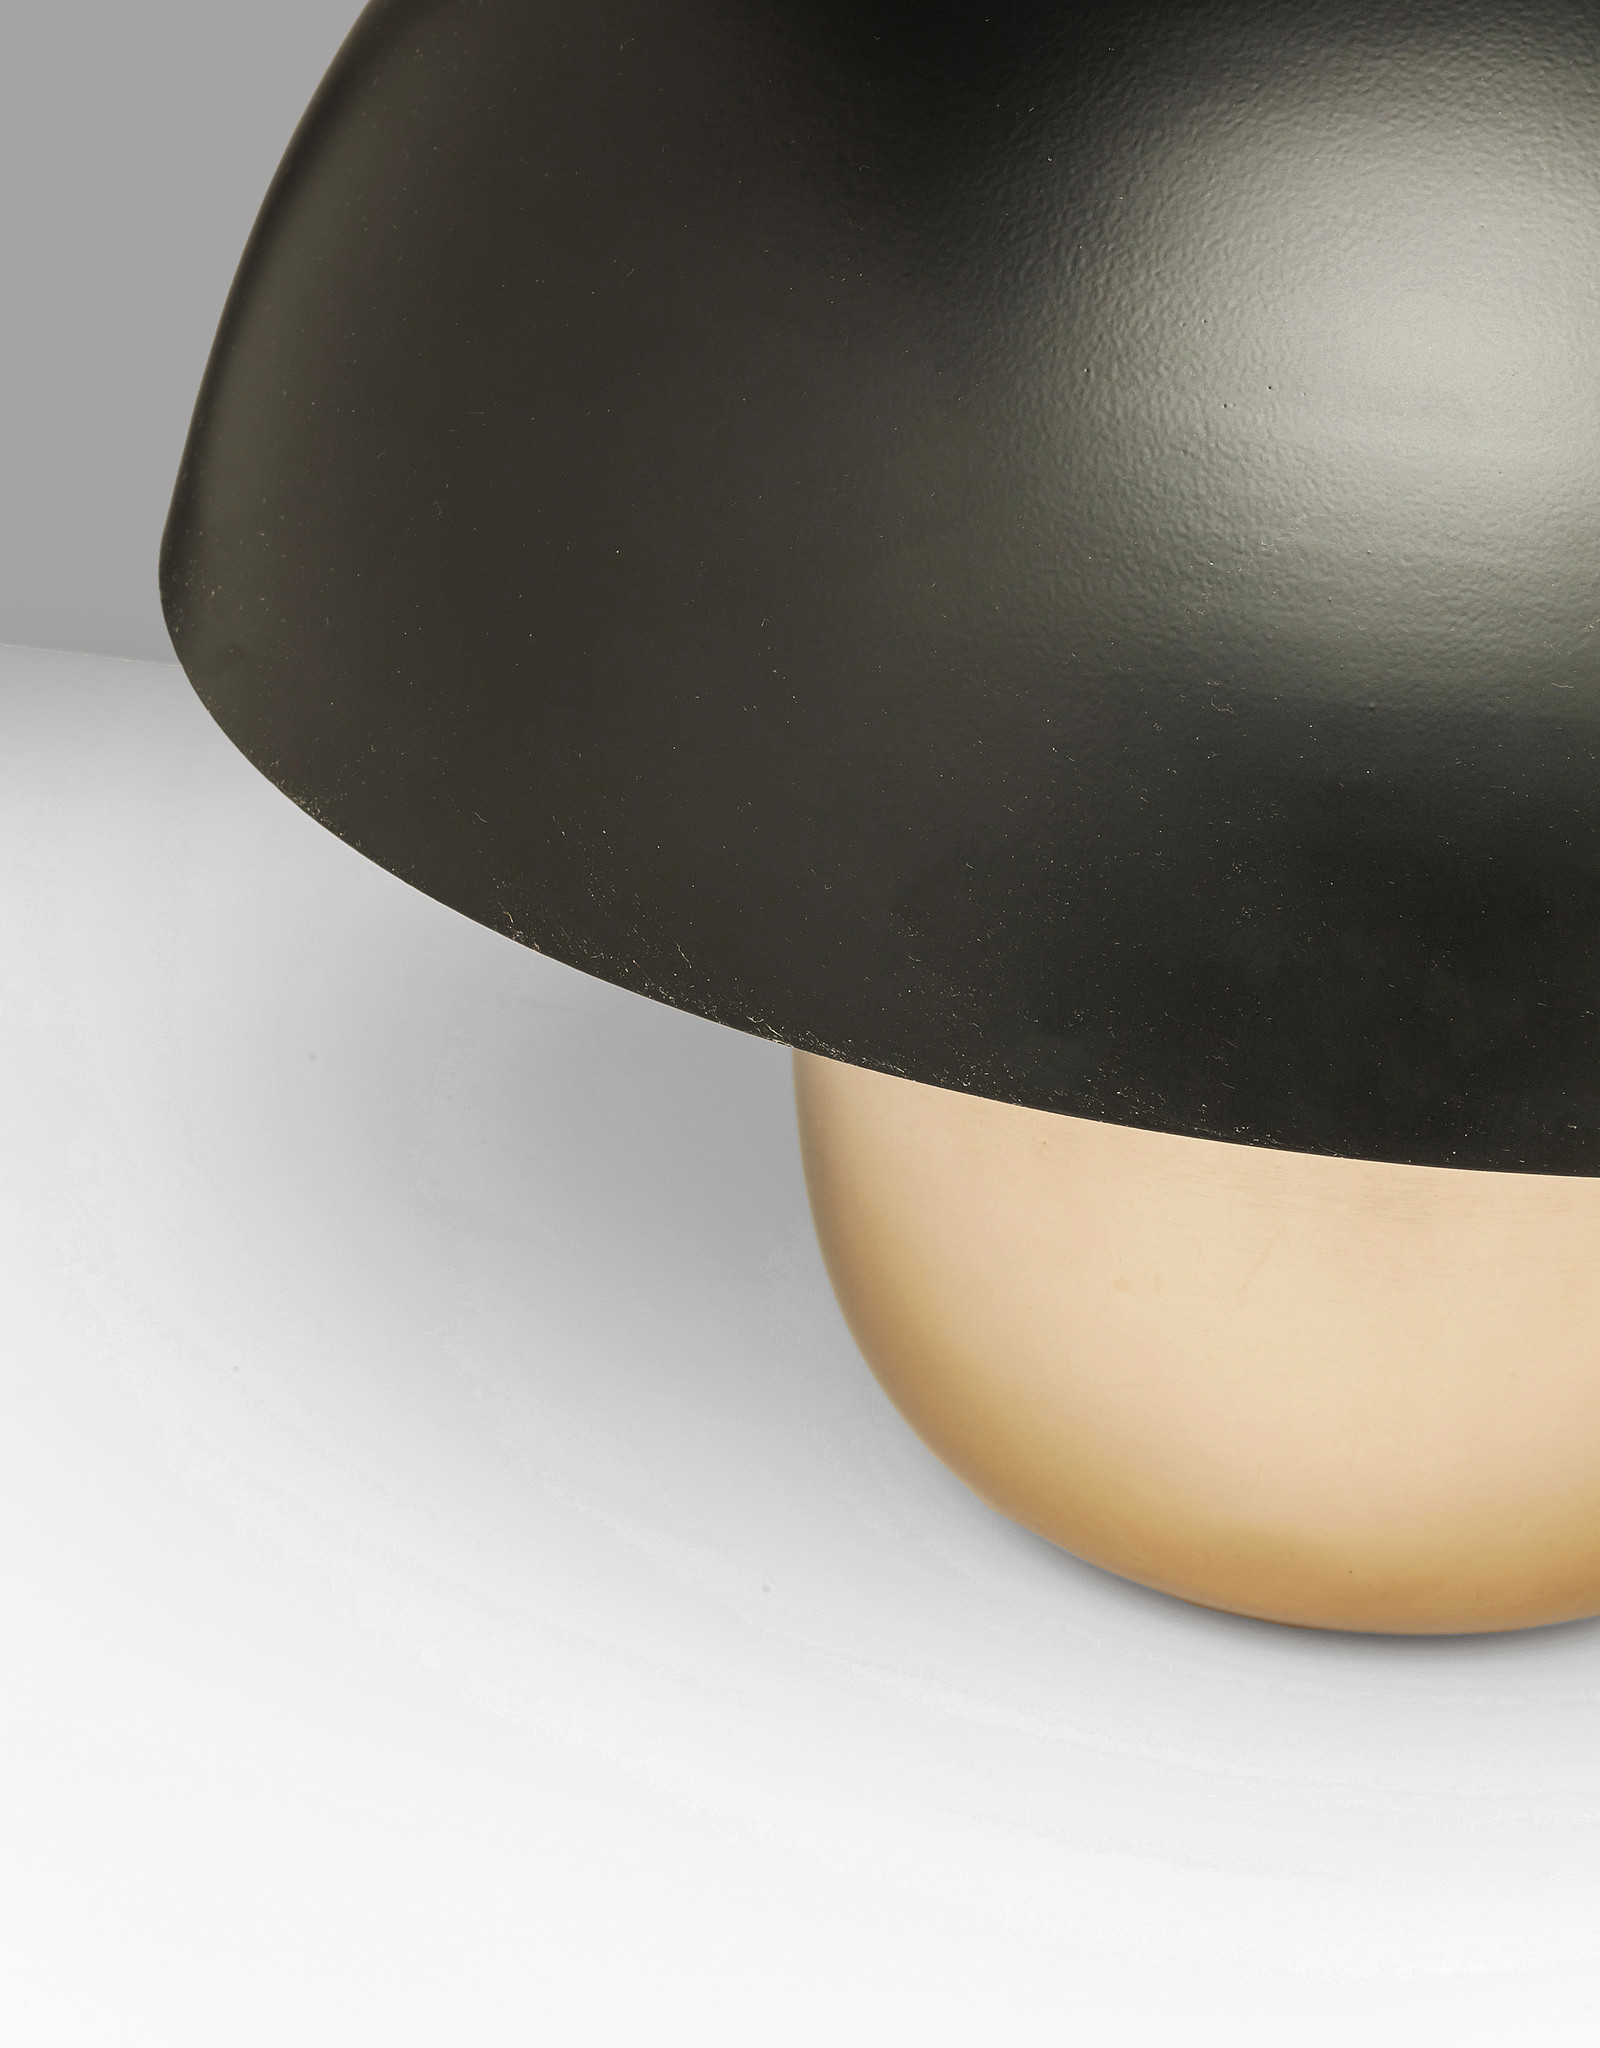 KARE DESIGN Table Lamp Mushroom Copper-Black